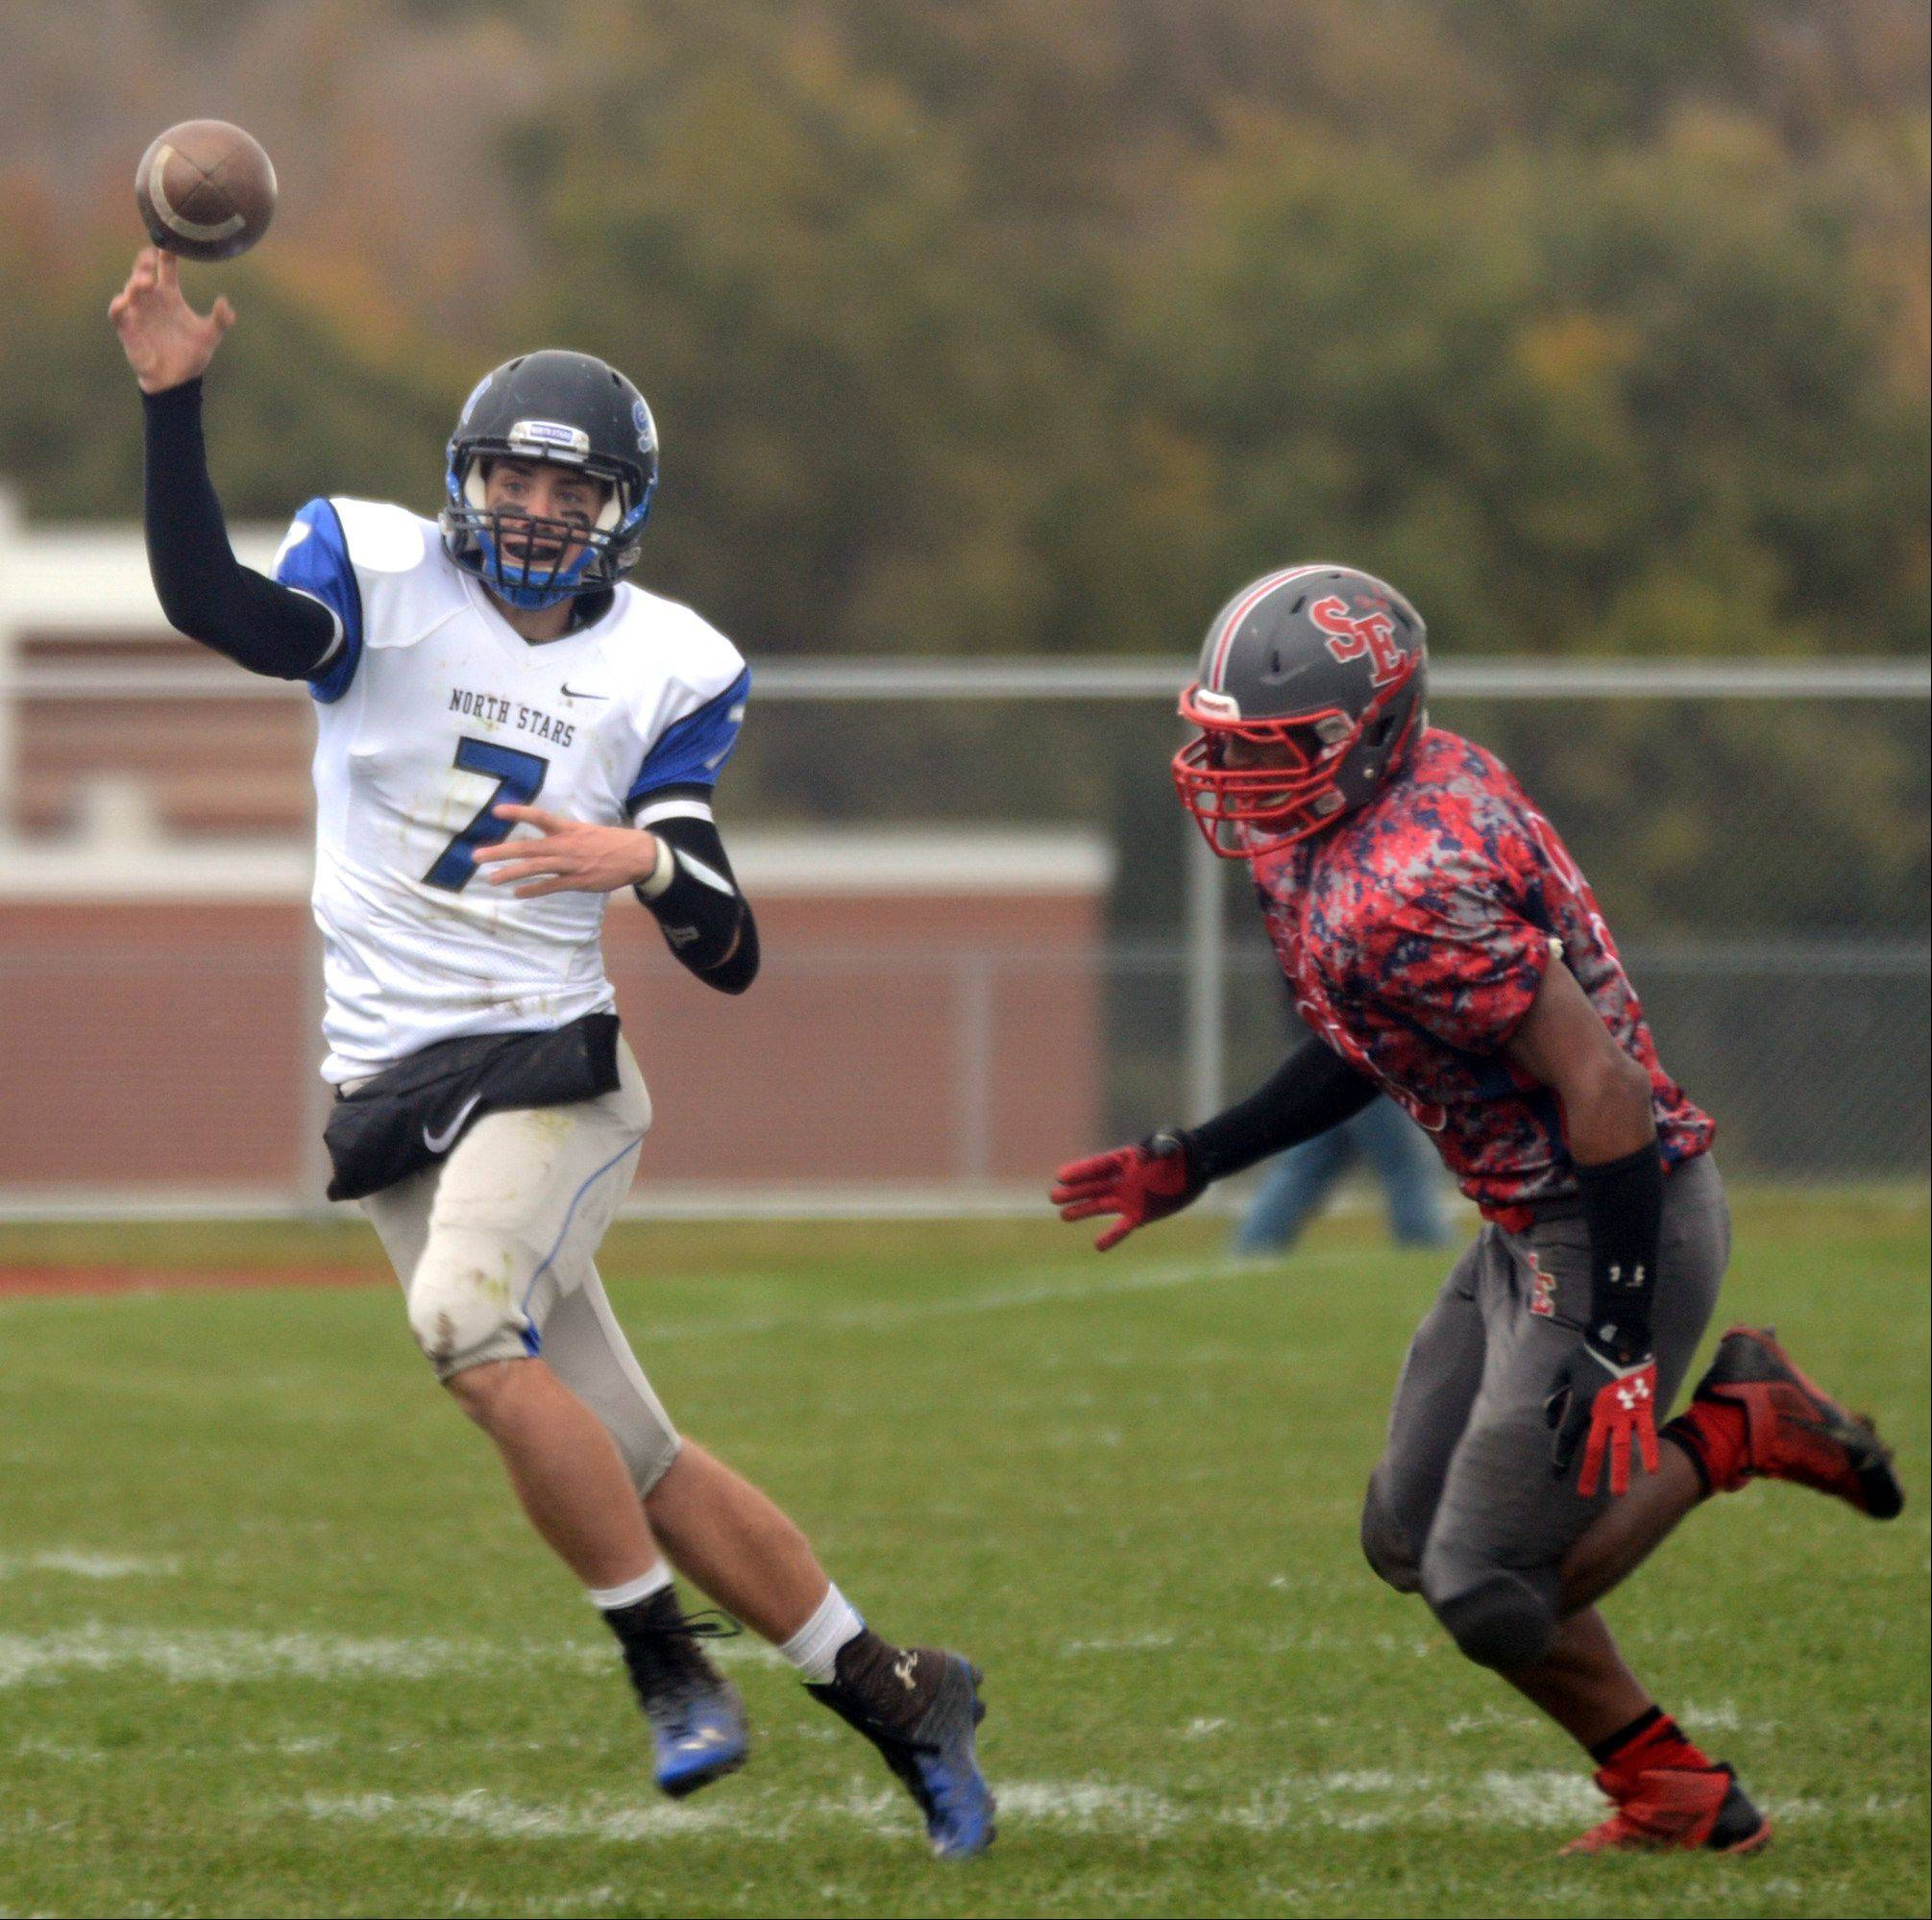 St. Charles North quarterback Erik Miller throws the ball during a varsity football game at South Elgin on Saturday.